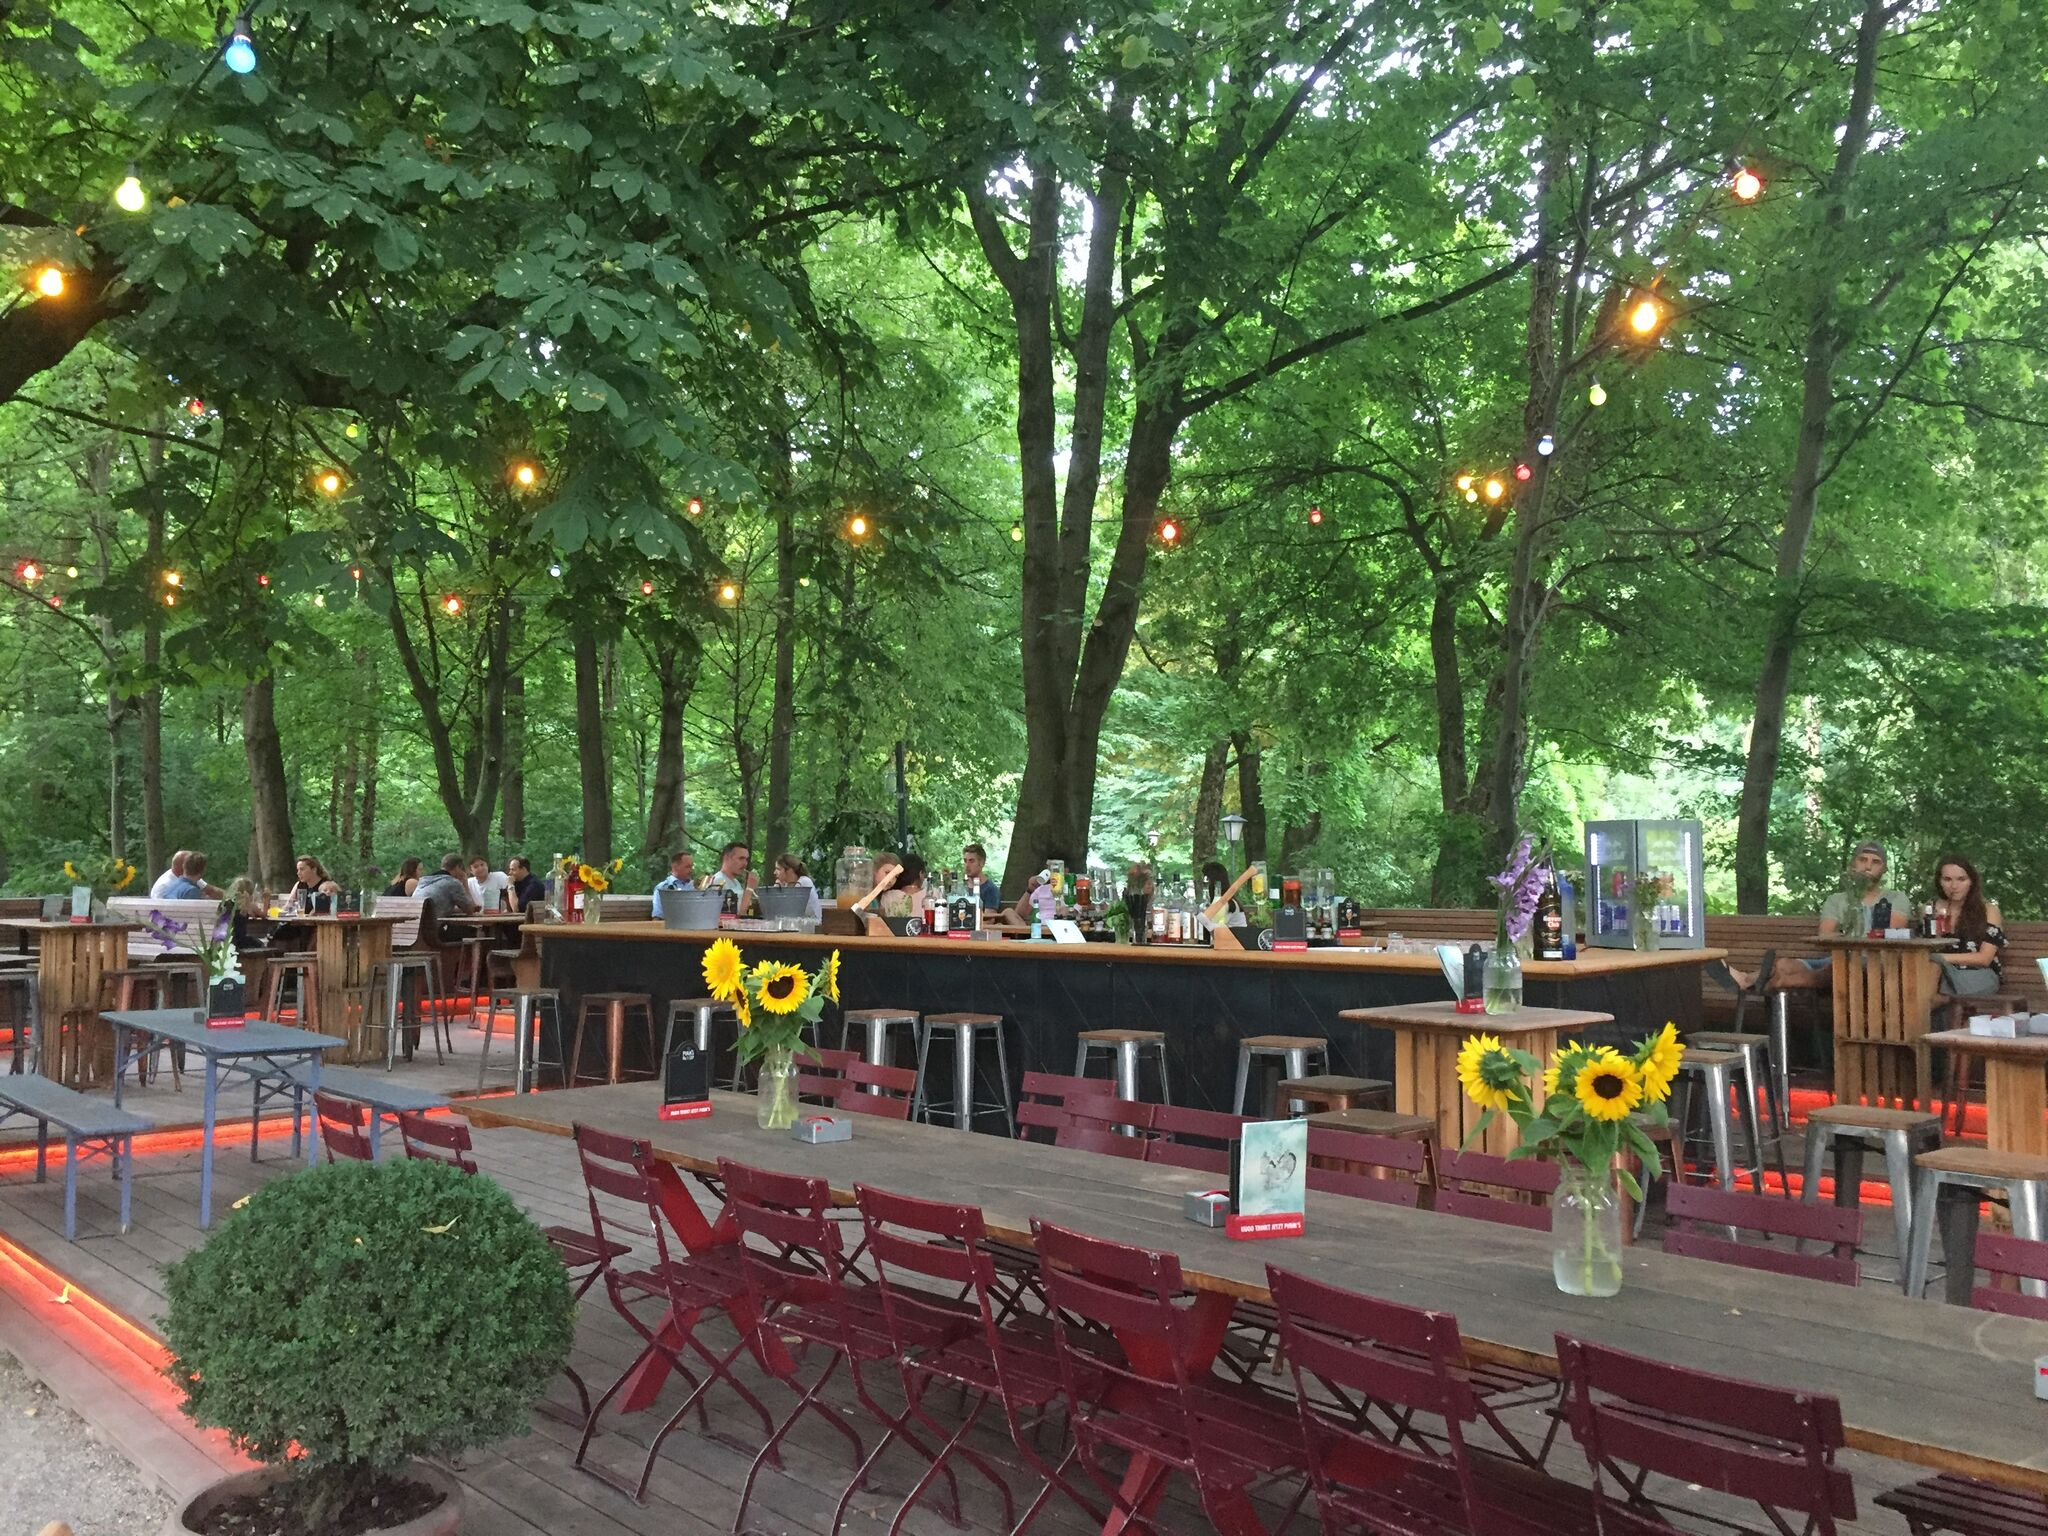 IMG 1821 1024x768 - Best Outdoor Bars and Rooftops for a Drink in Munich